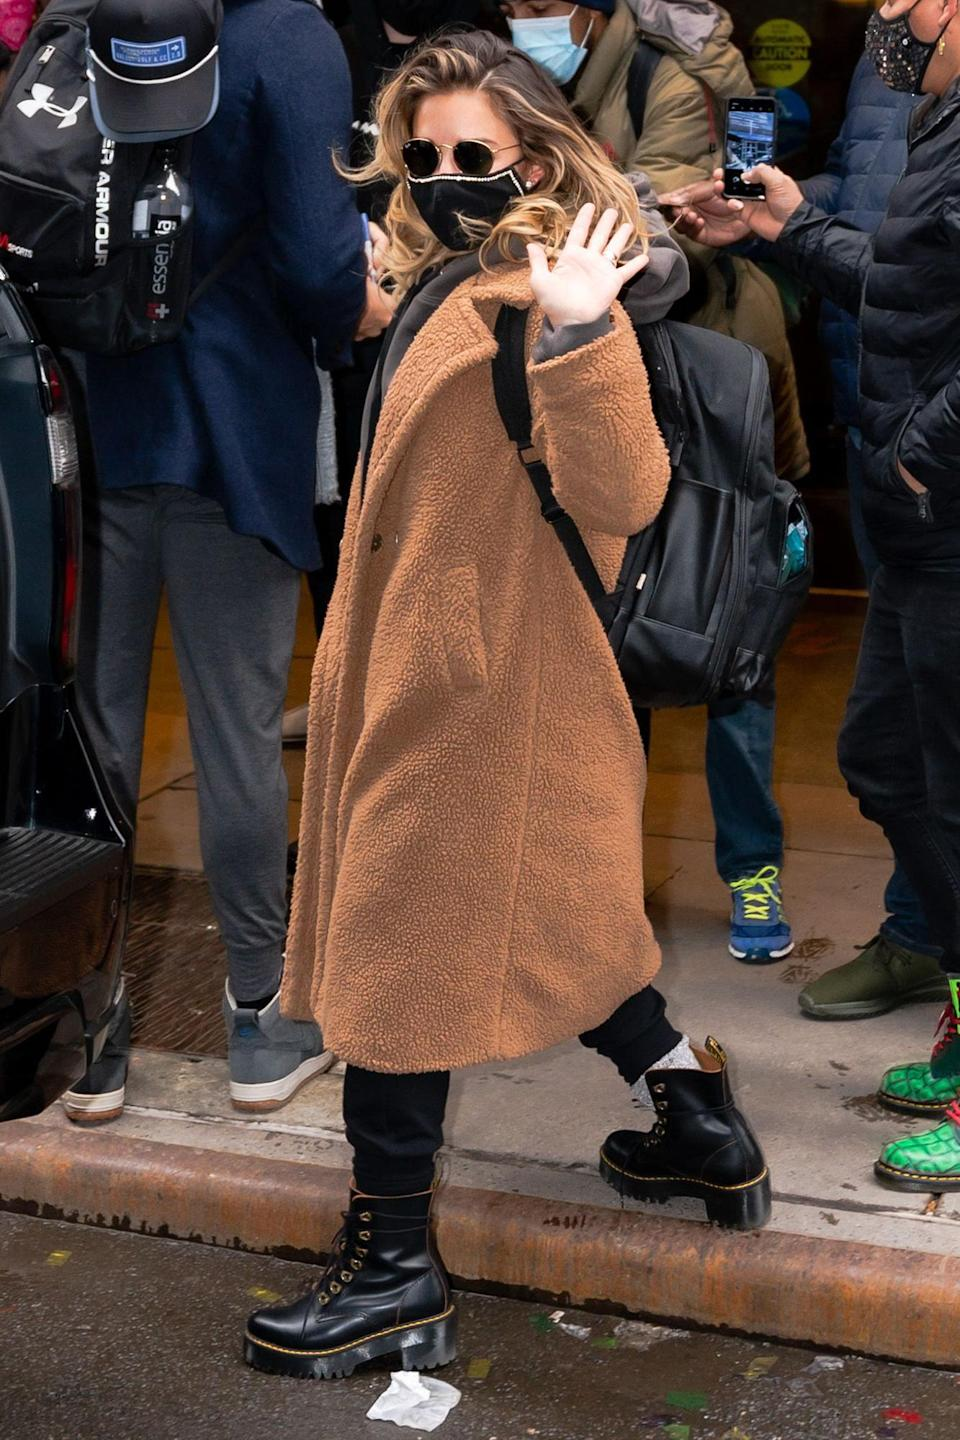 <p>Jessie James Decker was seen in New York City where she worked on New Year's Eve.</p>